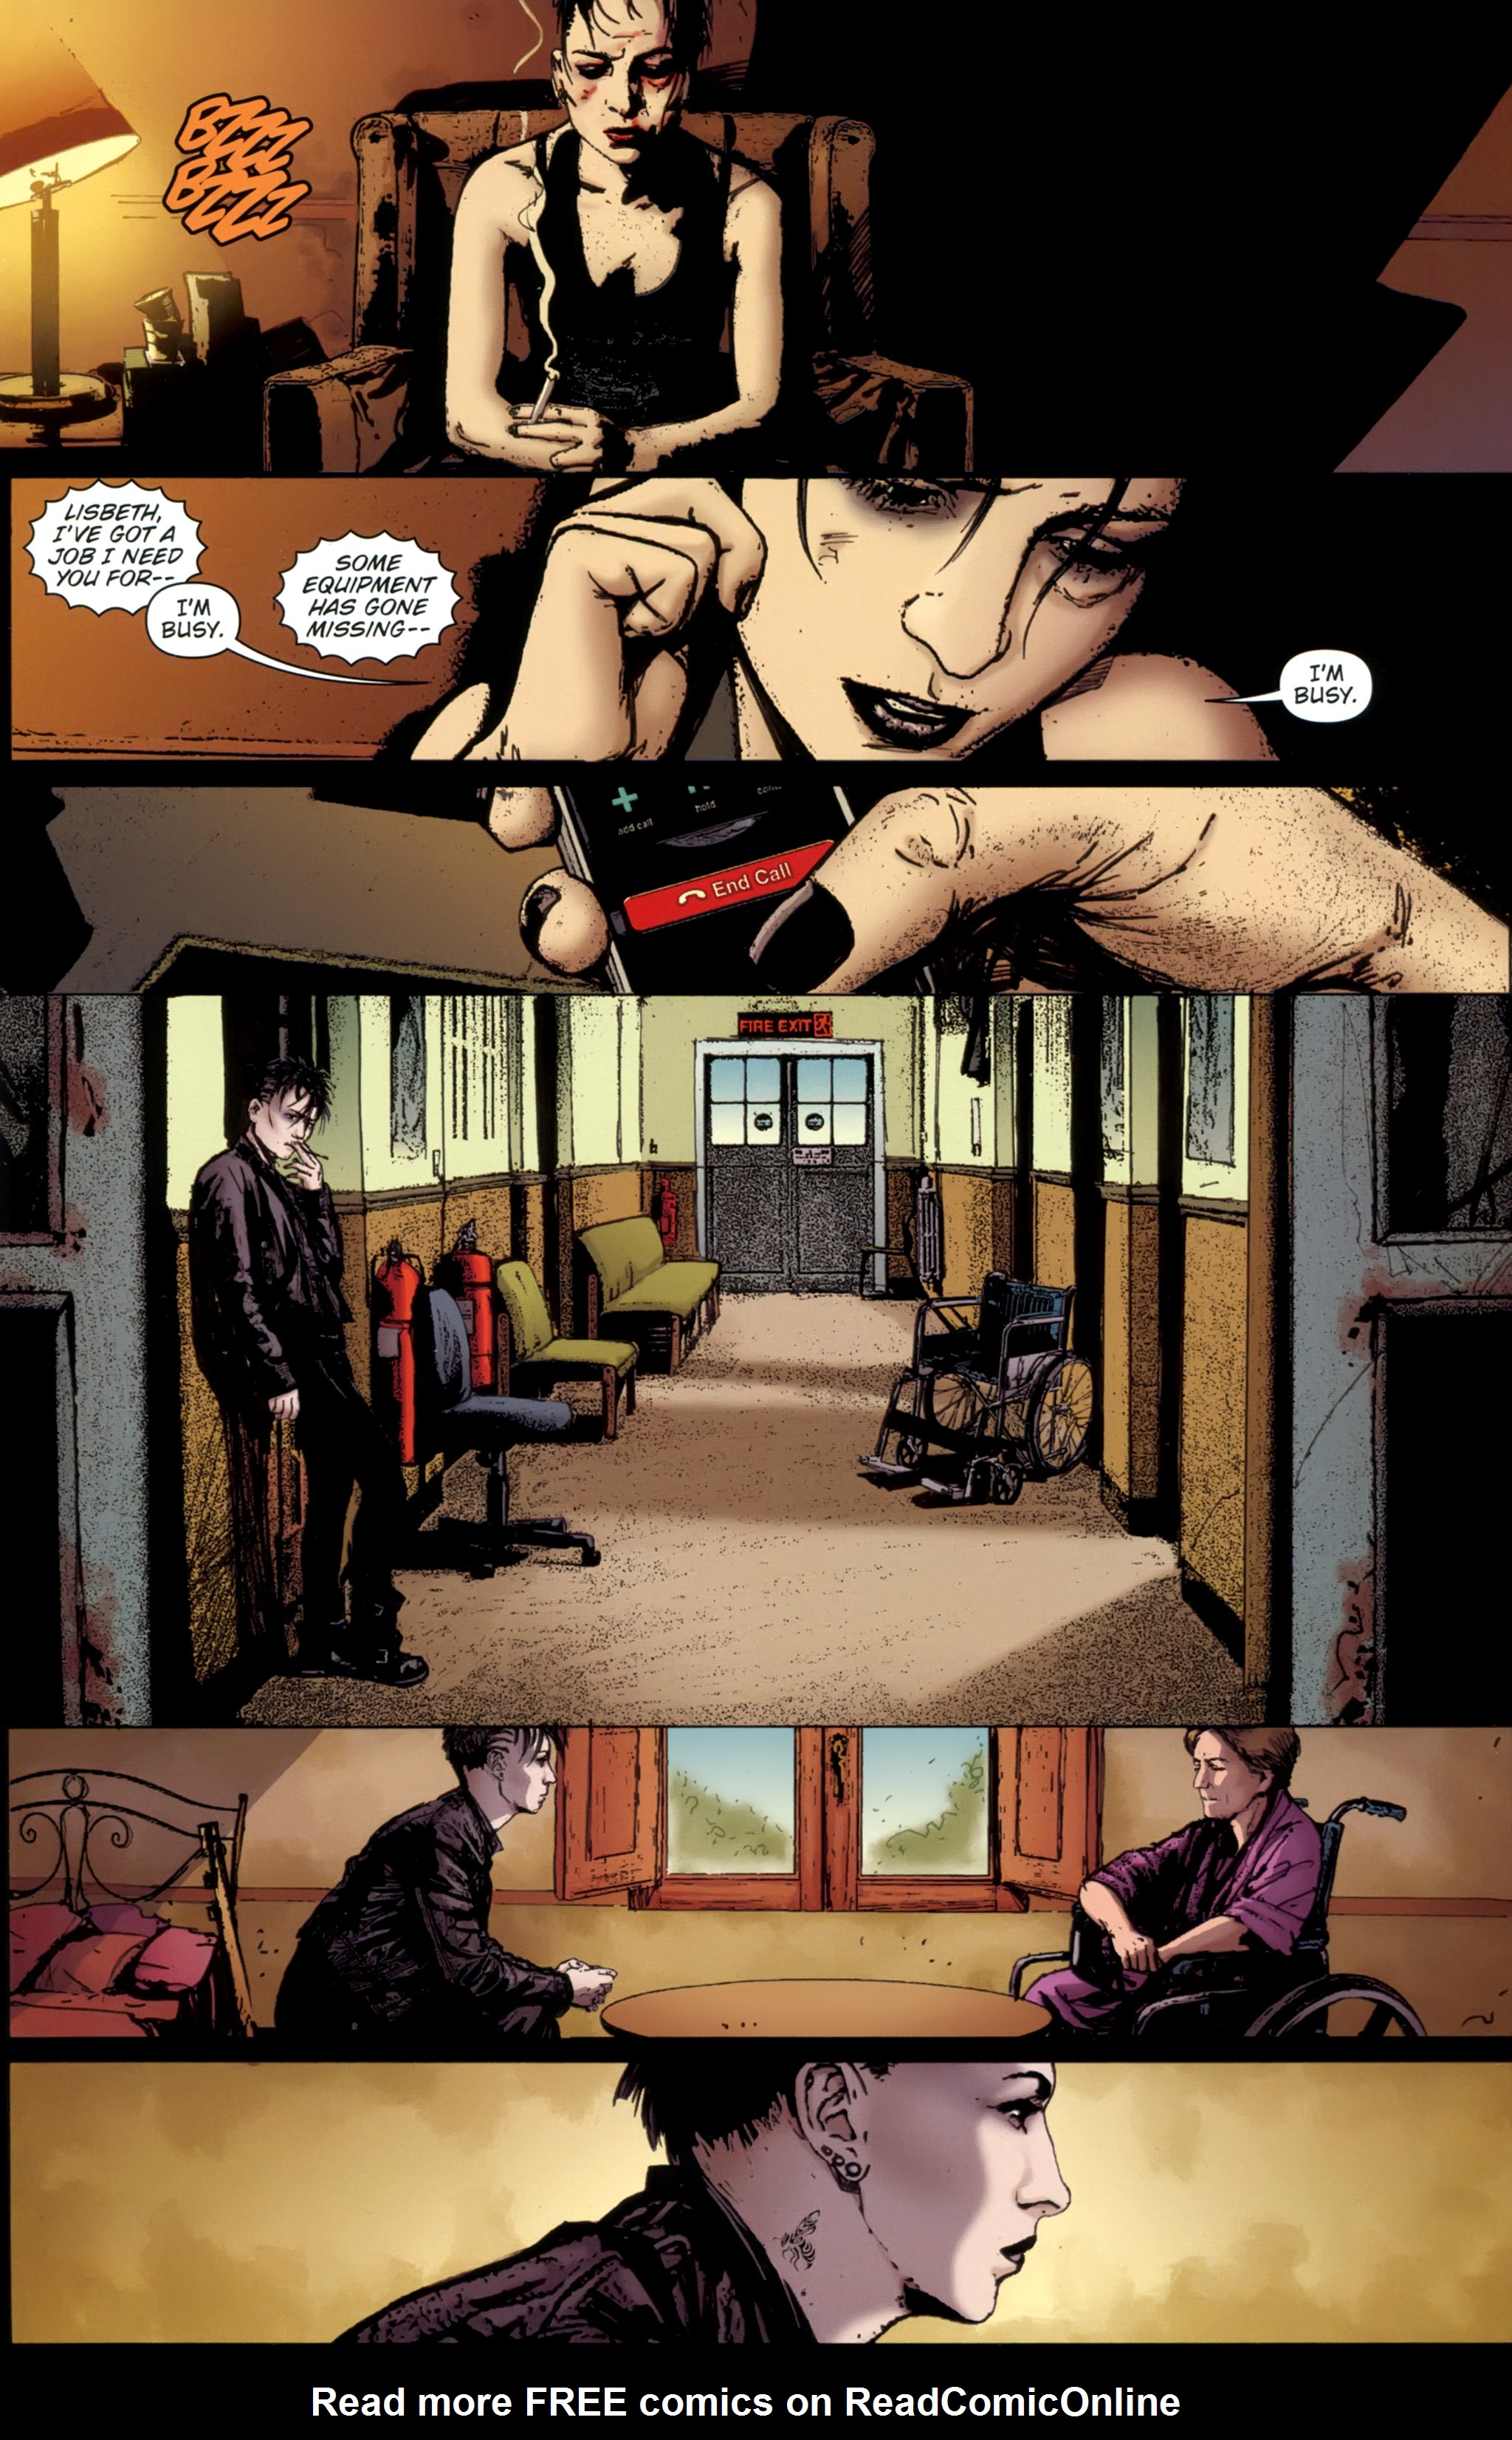 Read online The Girl With the Dragon Tattoo comic -  Issue # TPB 1 - 130